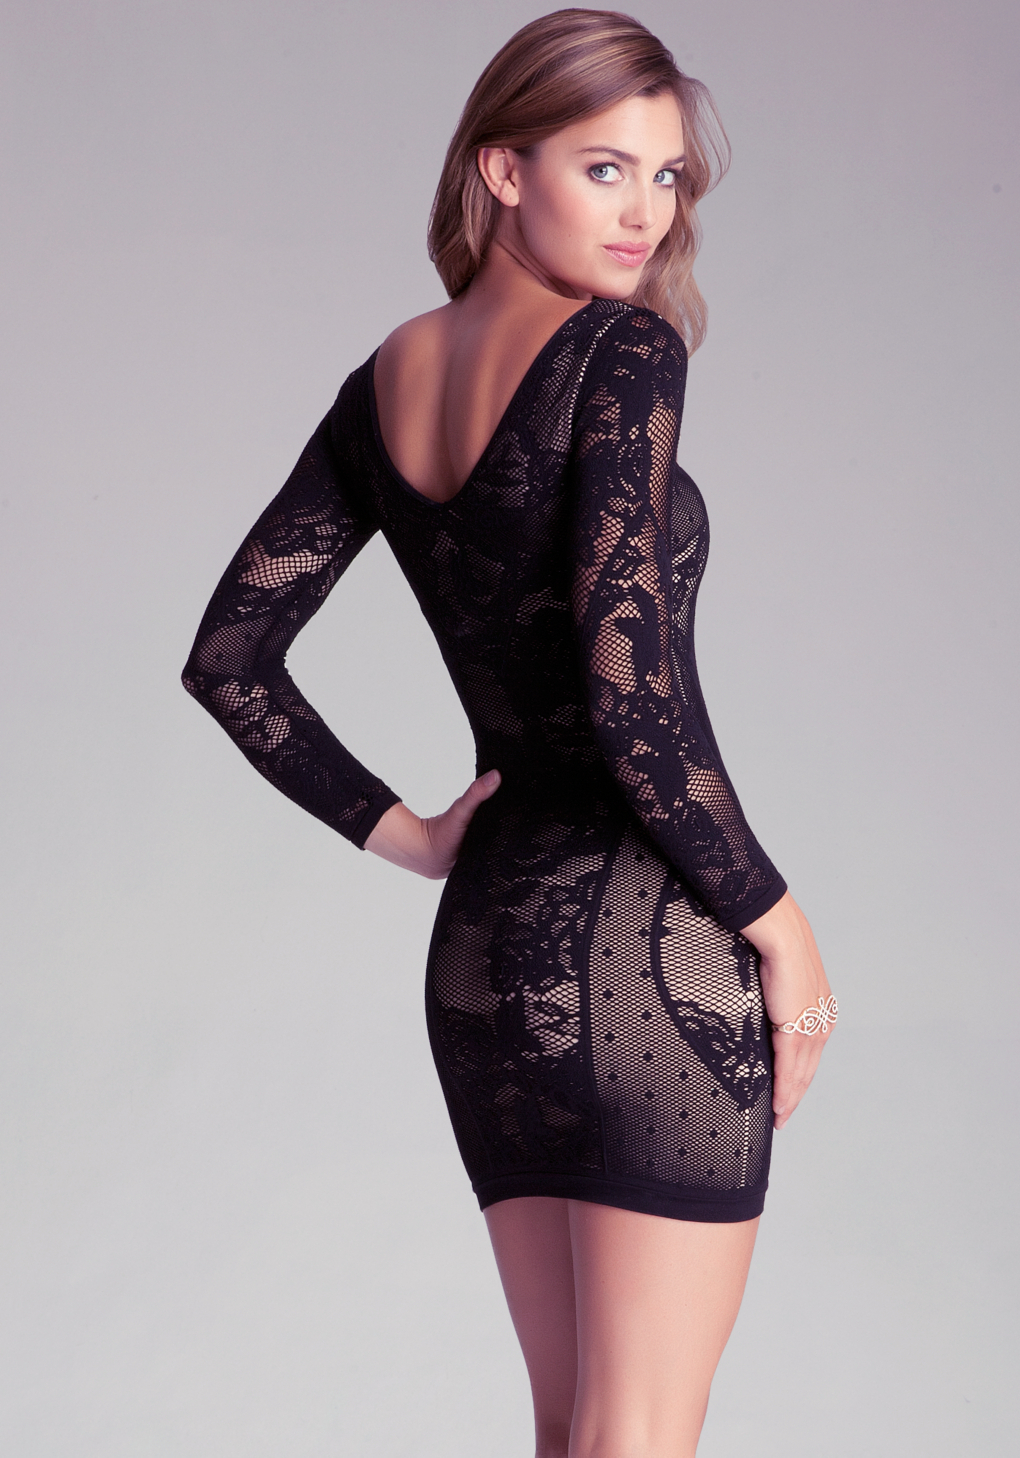 Dress: Bebe Jordana Lace Dress In Black